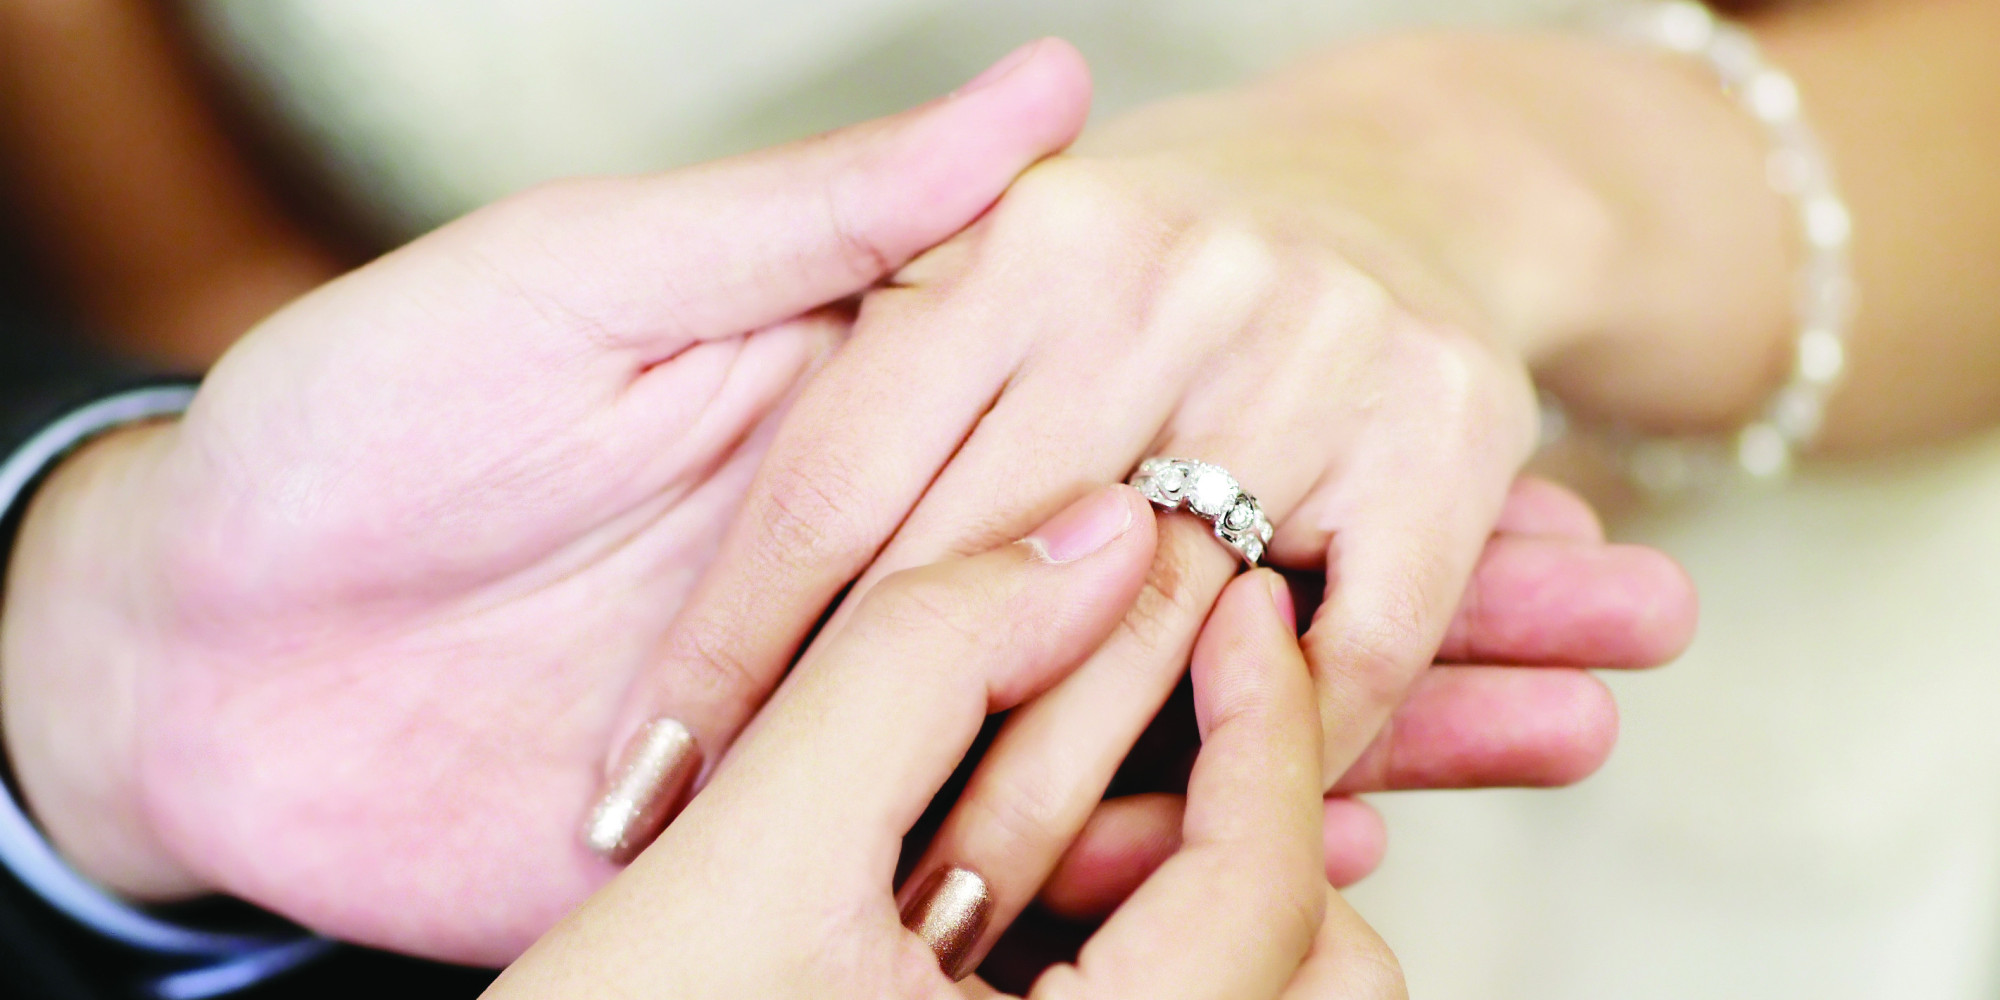 Could Your Engagement Ring Cost You The Job Offer? | HuffPost